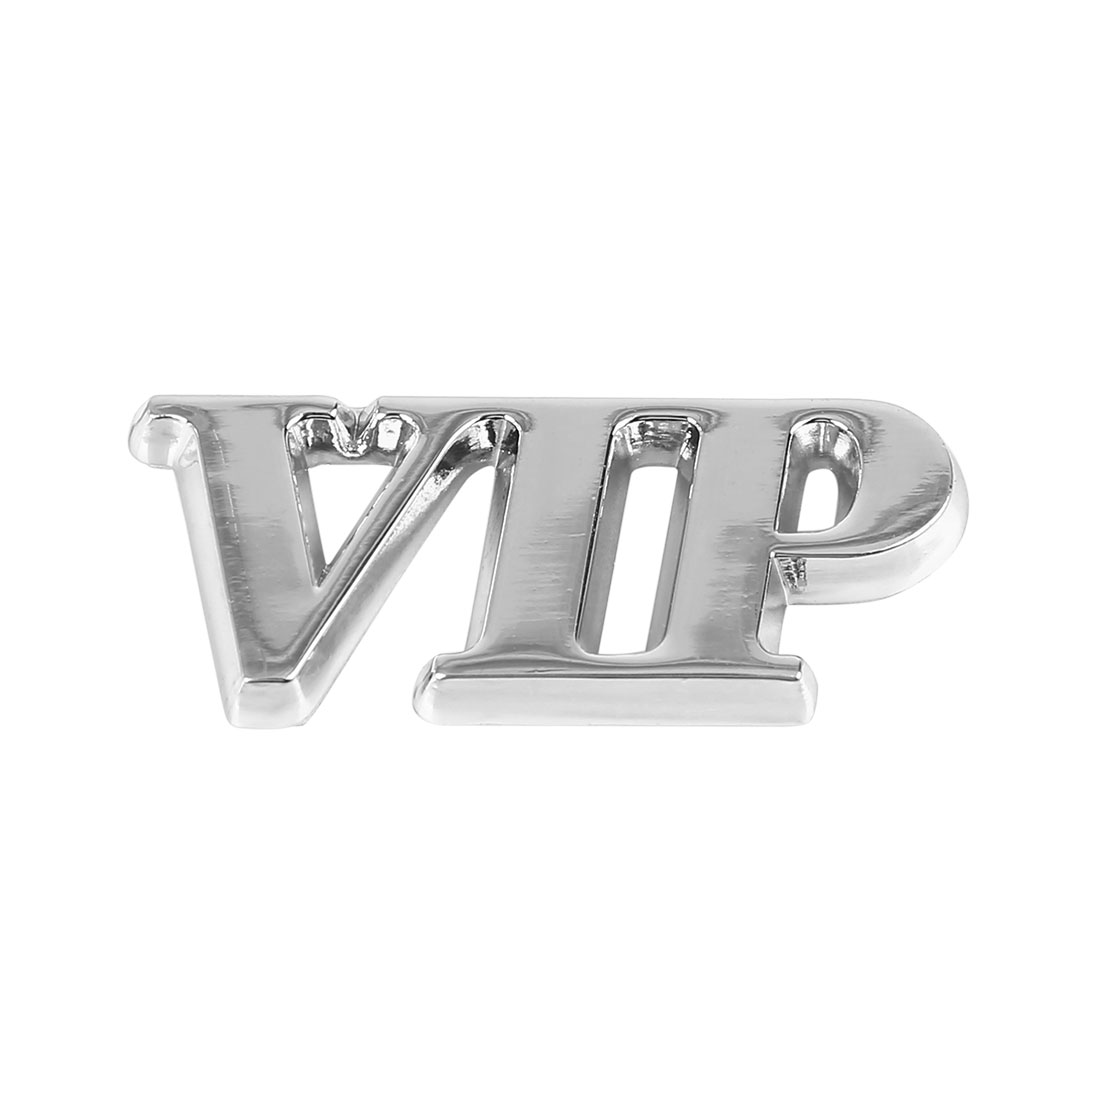 Silver Tone VIP Shaped Car Body Metal Decorative Emblem Badge Decal Sticker